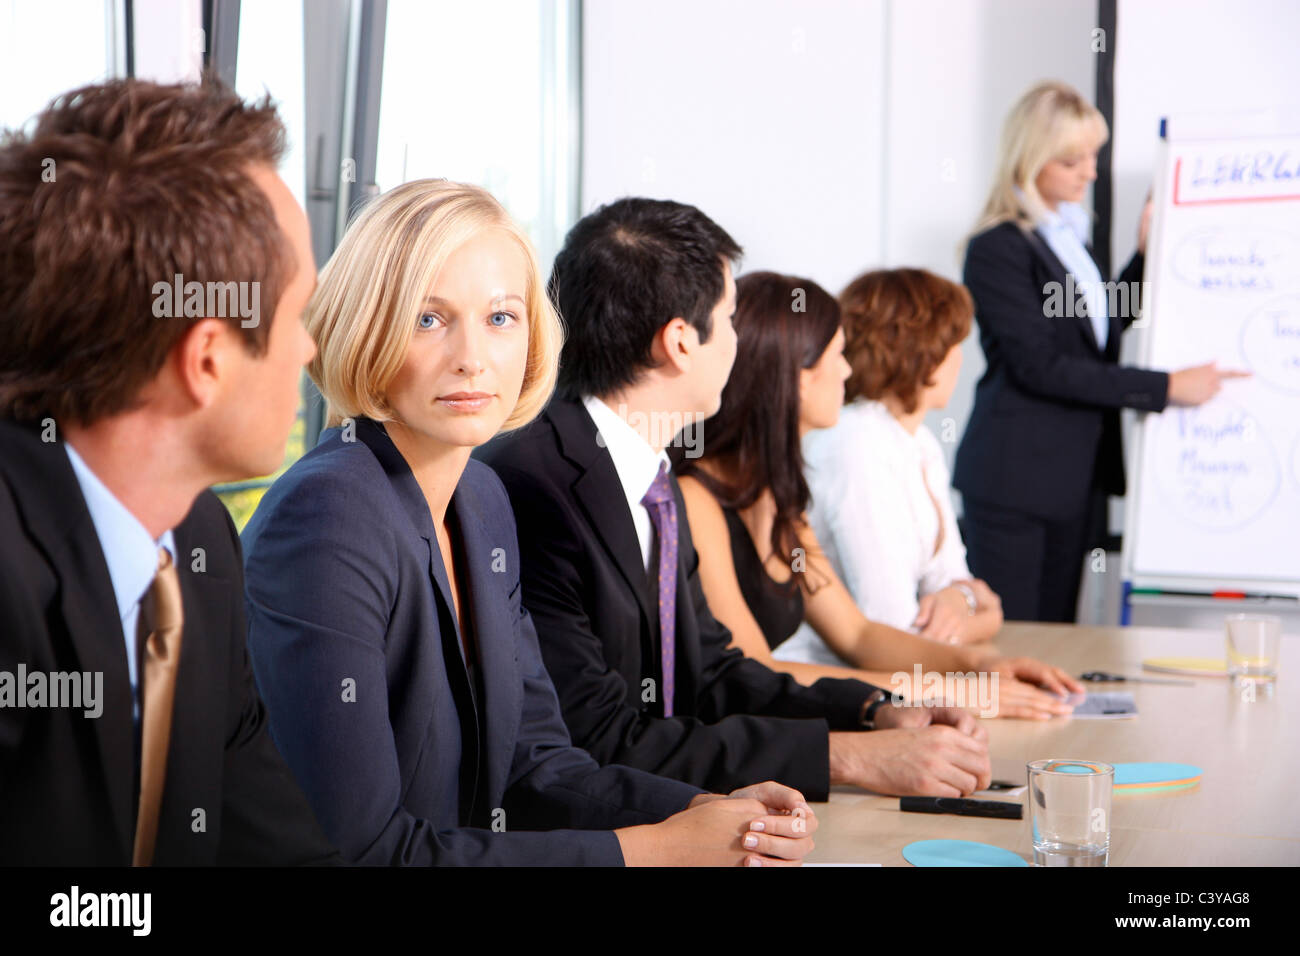 work, job, office, team, group, people, presentation, appeal, conference, conference room, business, firma, flipchart, - Stock Image